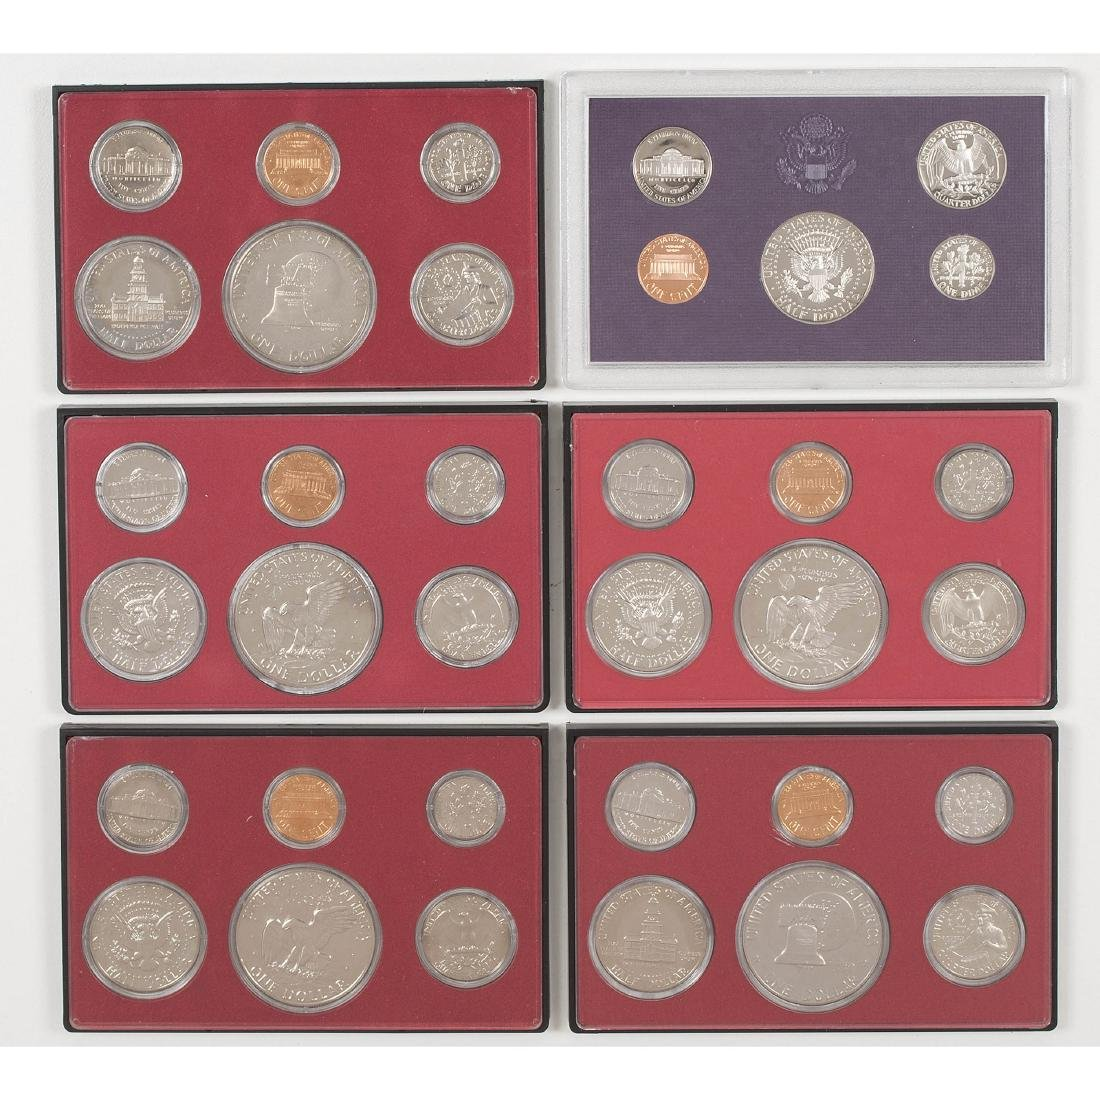 United States Proof Sets 1958-2004 - 8